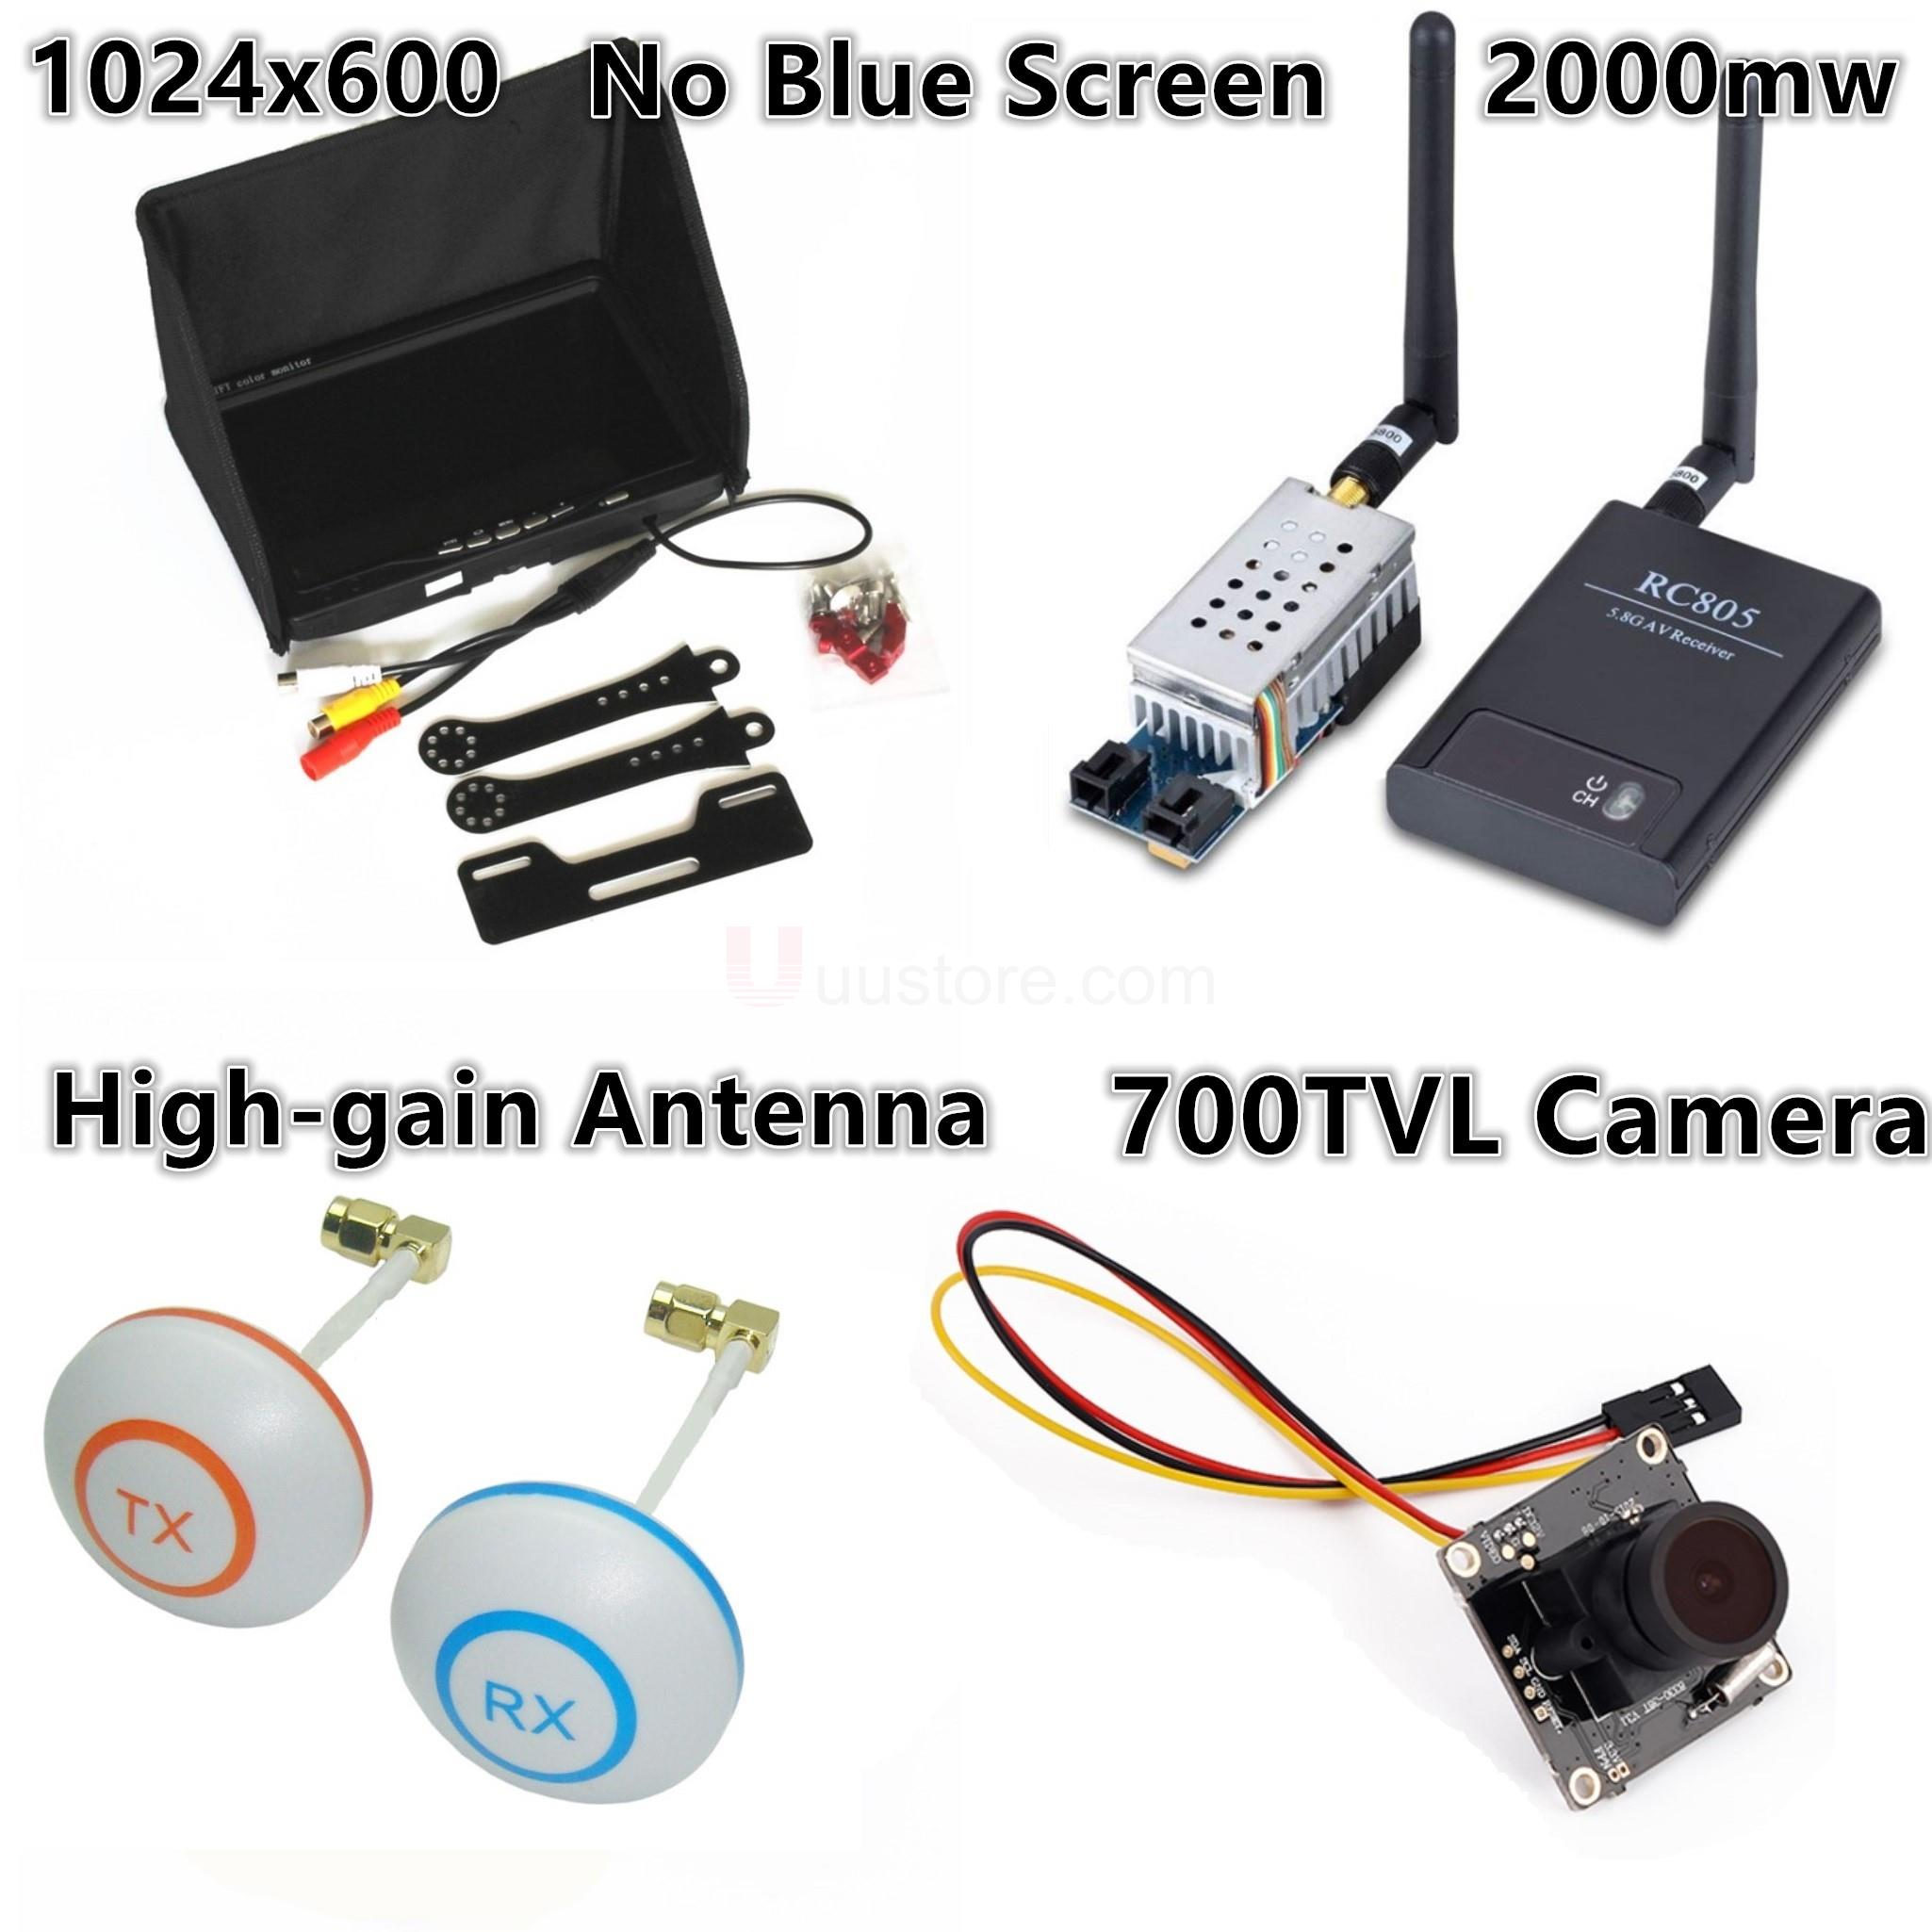 AIO font b RC b font FPV Combo System 5 8Ghz 2000mw Transmitter RC805 Receiver 1024x600